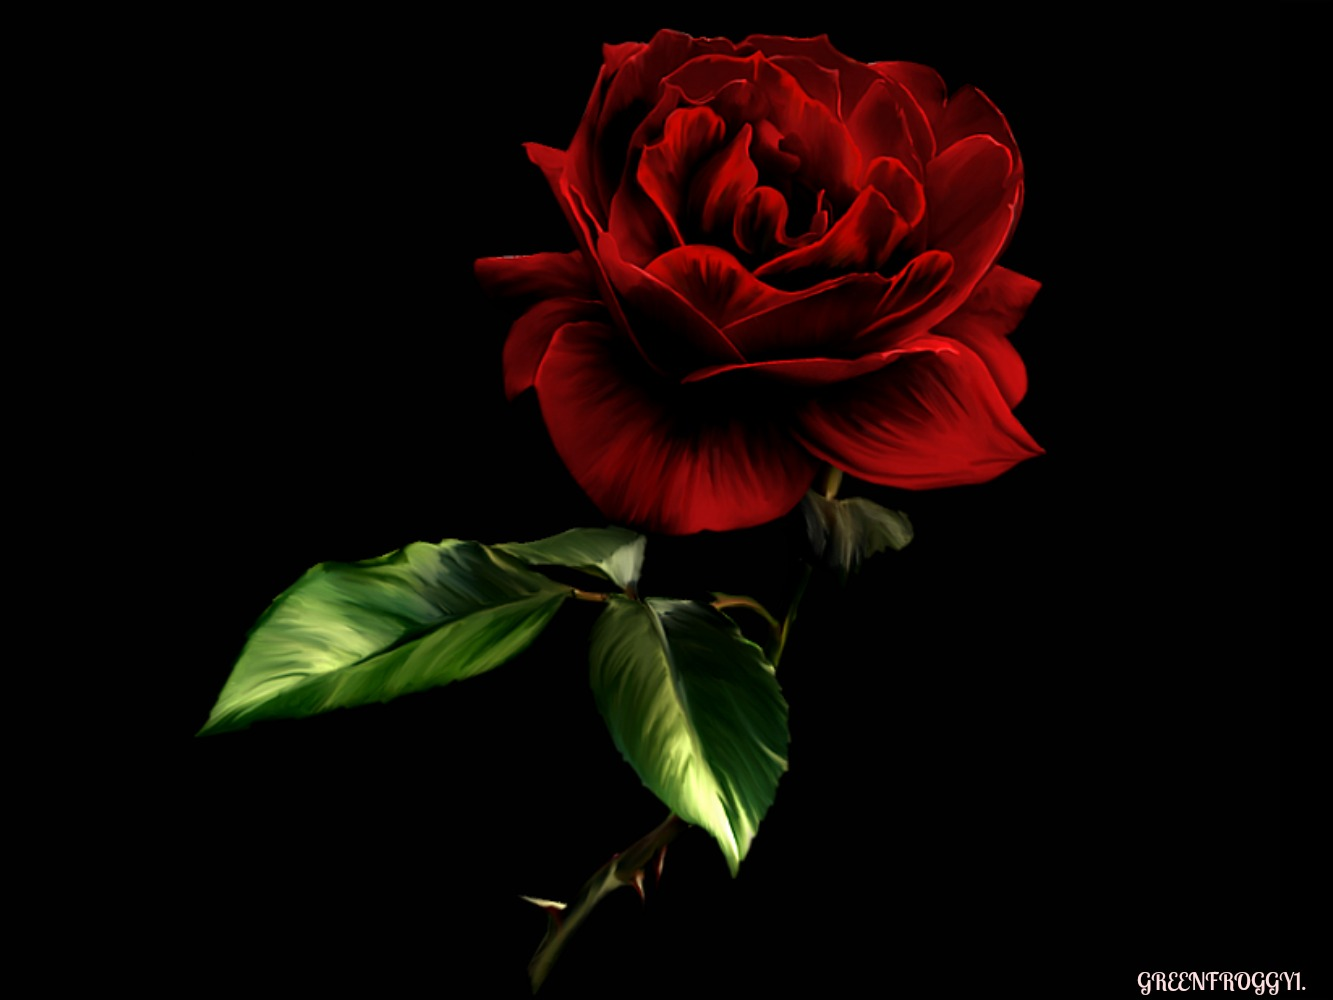 RED ROSE ON BLACK Wallpaper And Background Image